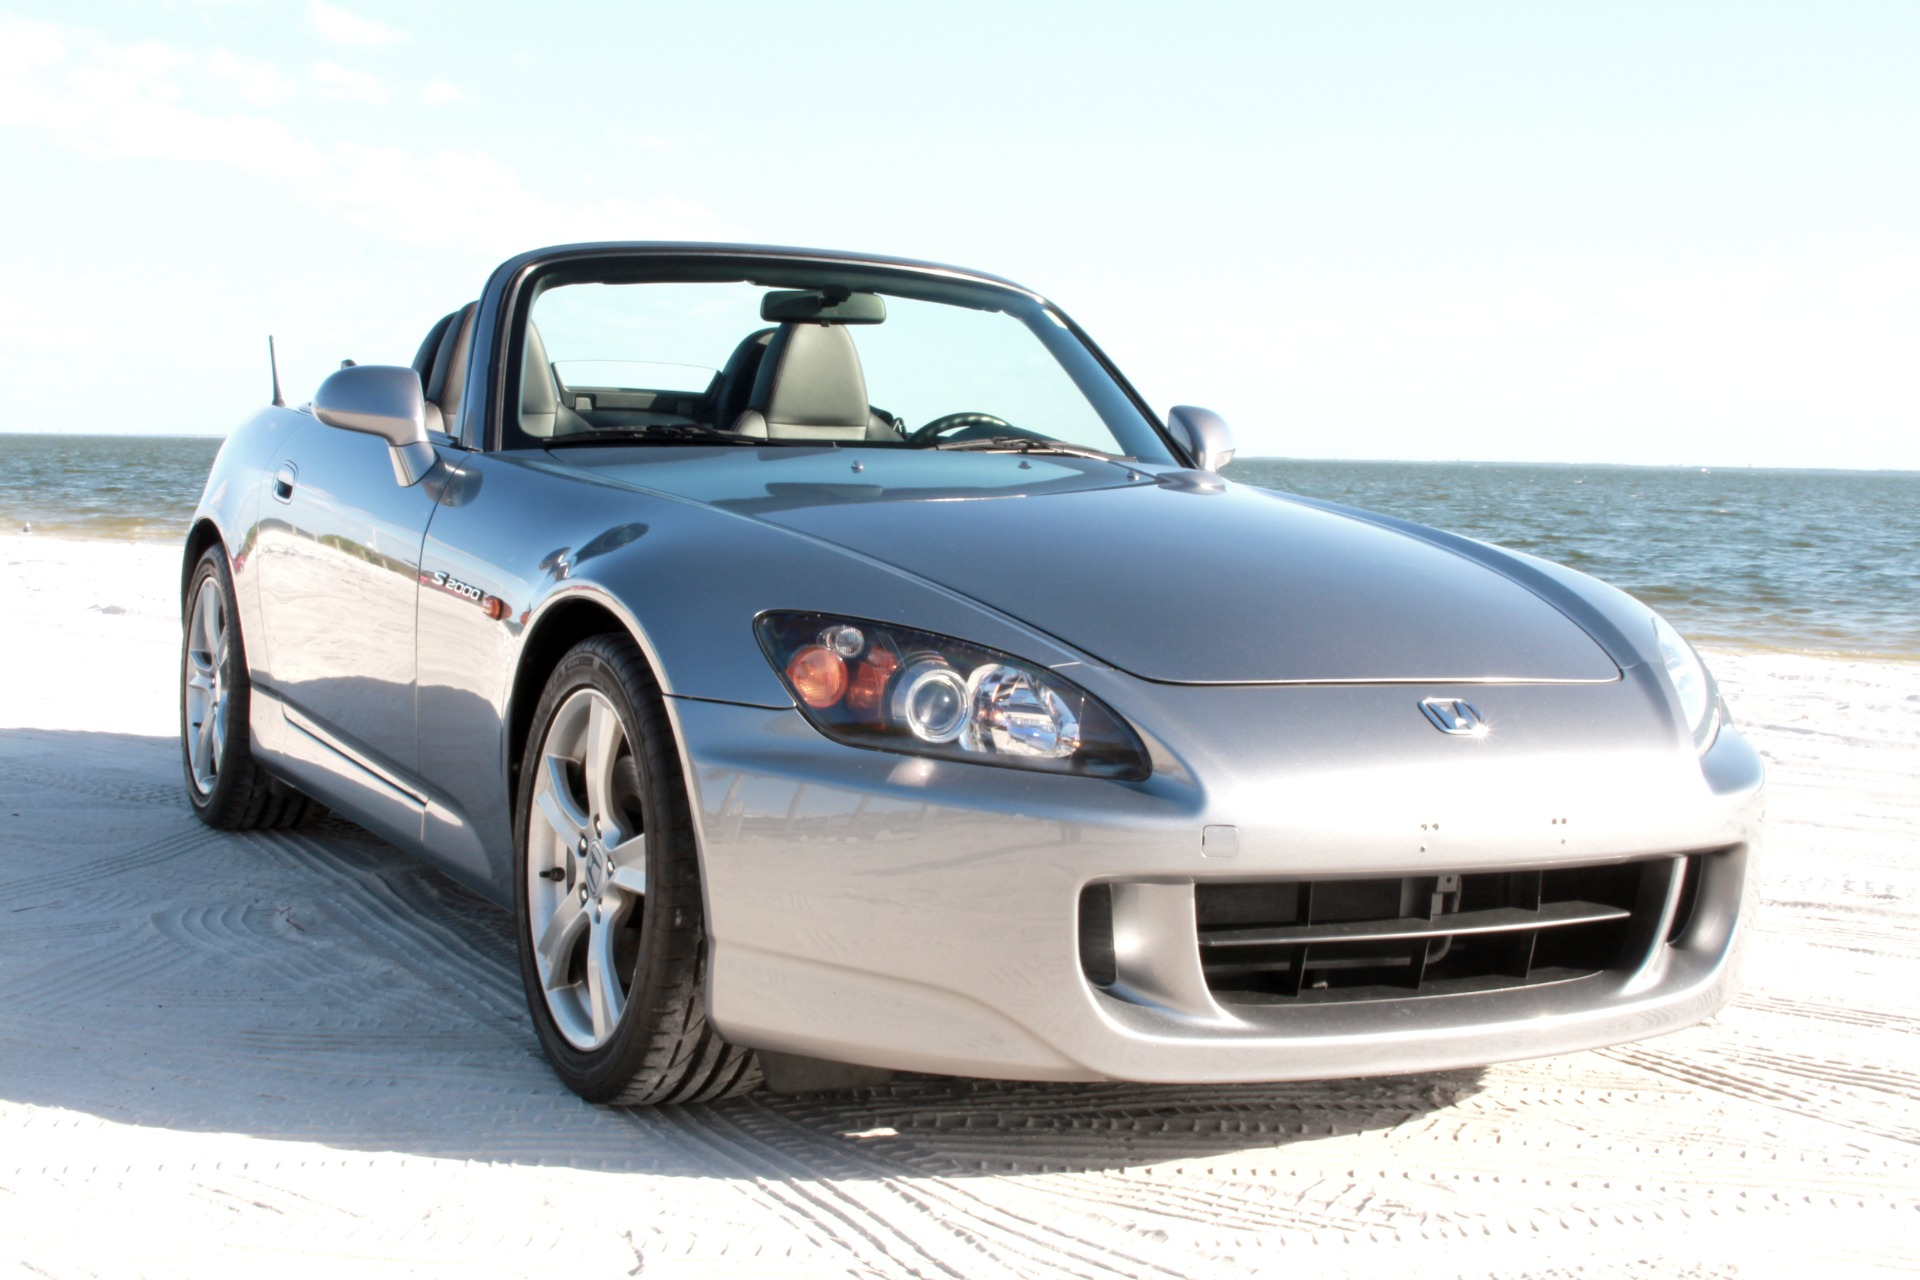 Used 2008 Honda S2000 Convertible 2D for sale Sold at Track and Field Motors in Safety Harbor FL 34695 1